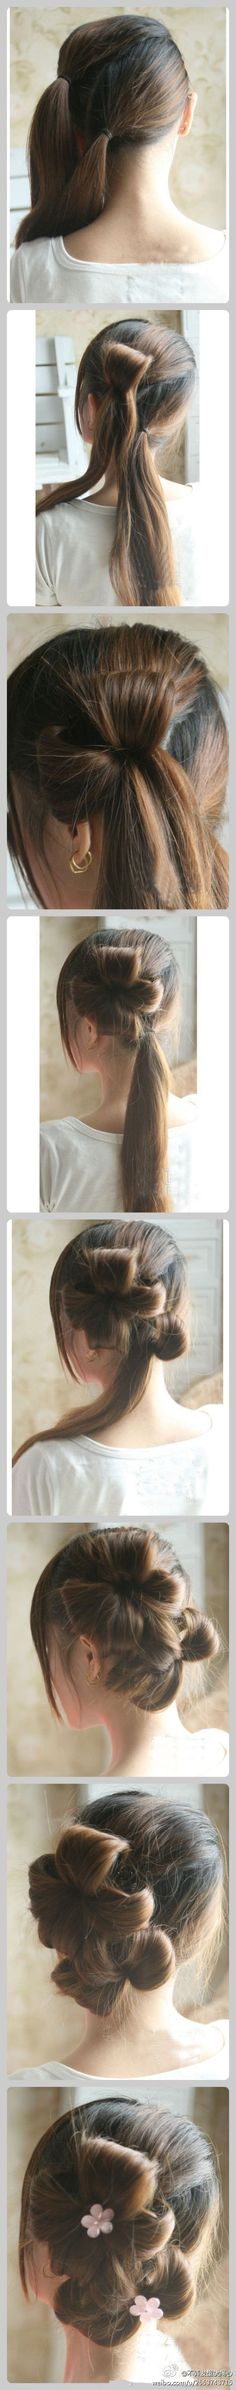 Cute and playful updo!